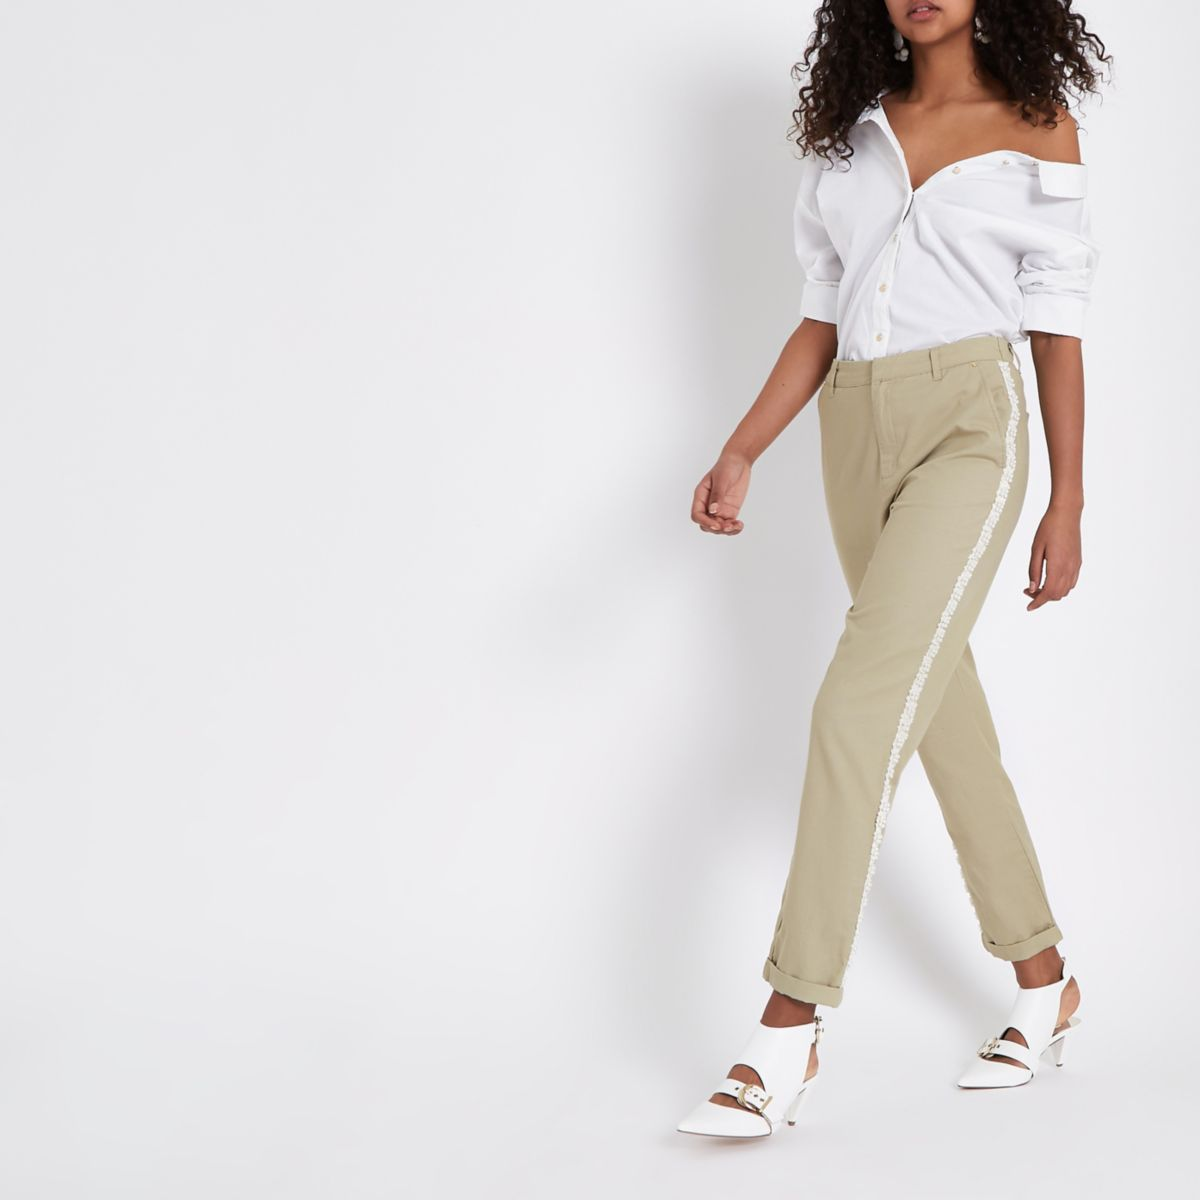 Beige Pearl Embellished Trim Chino Pants by River Island